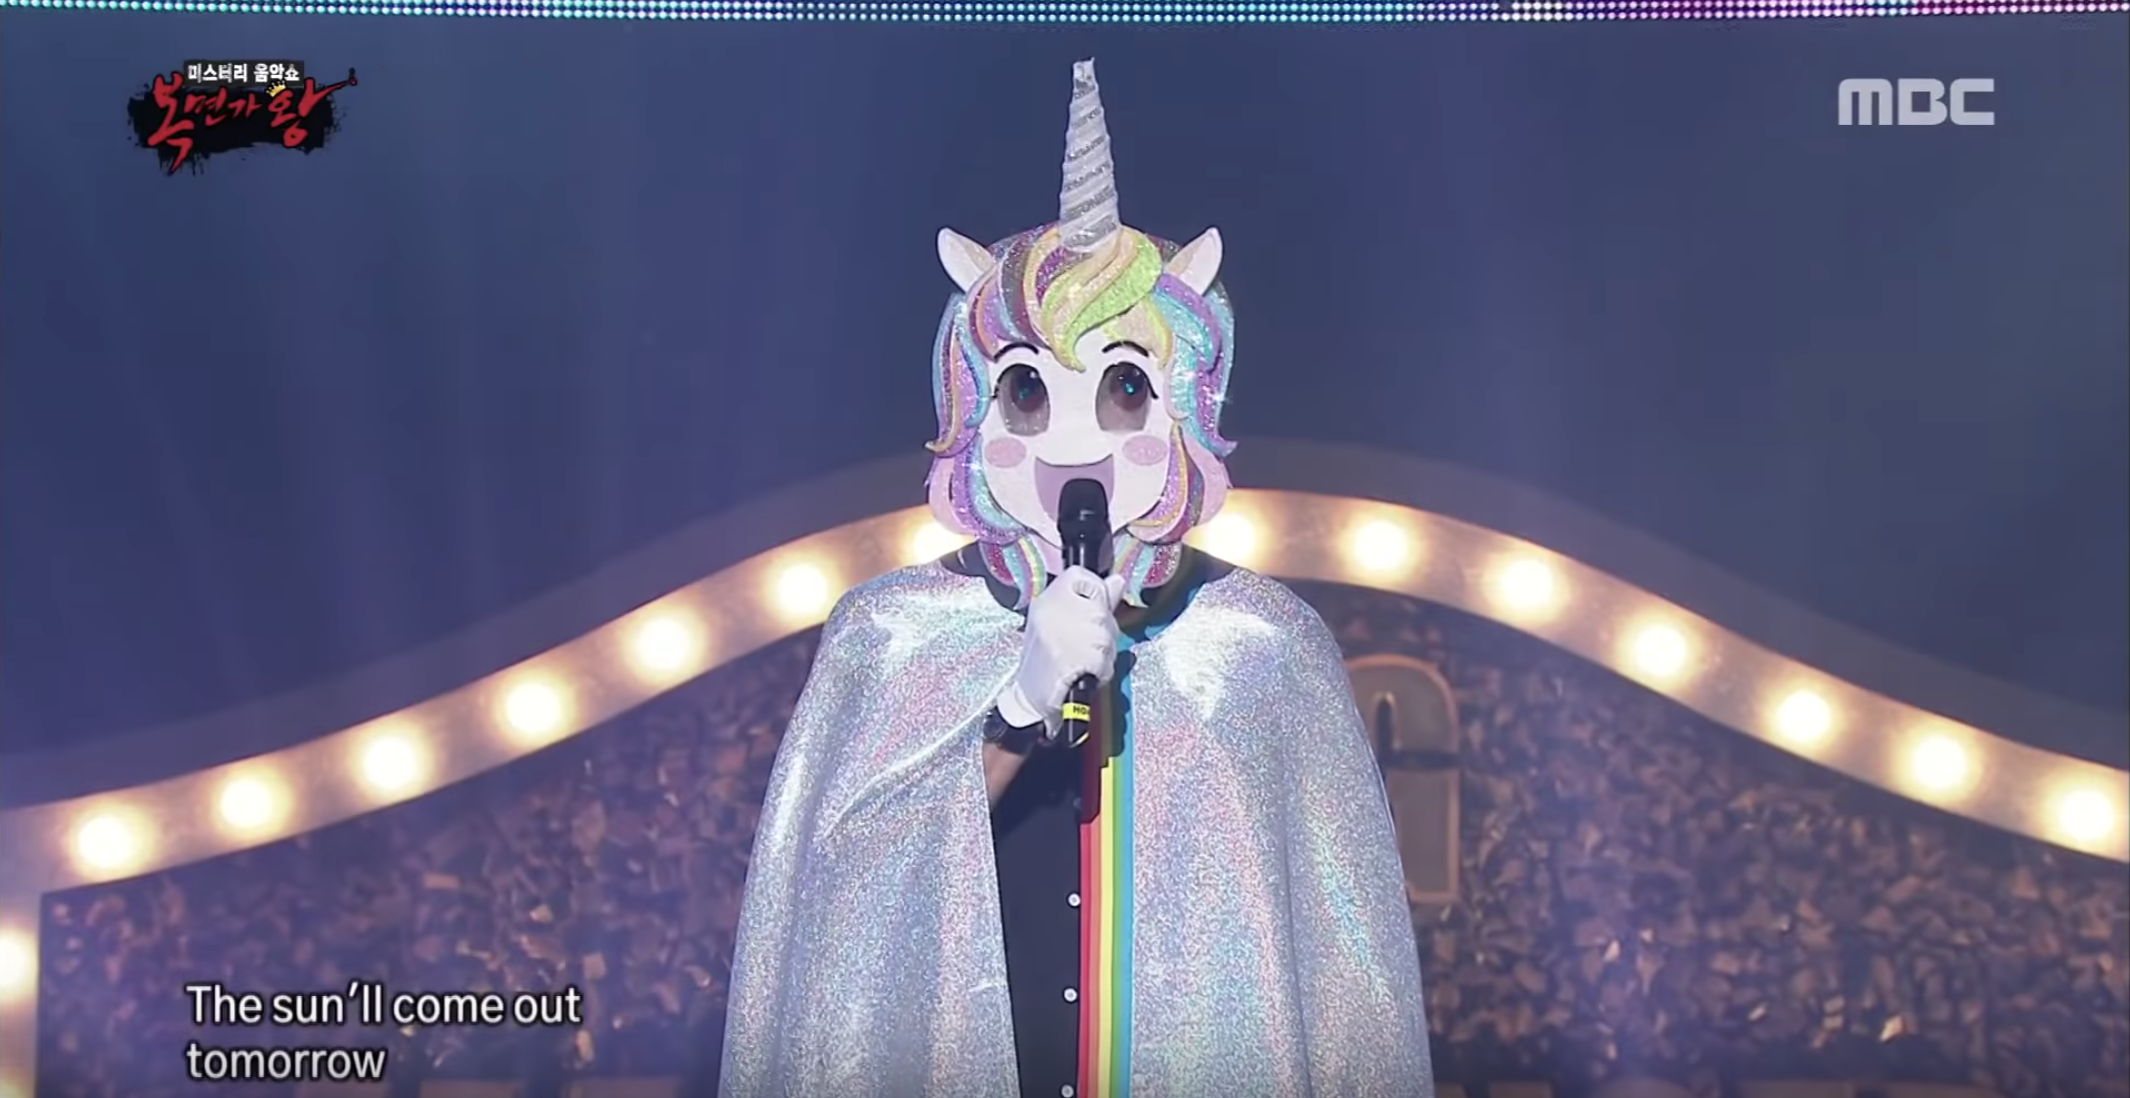 Reynolds Dons Unicorn Costume, Sings Annie Soundtrack on Korean TV